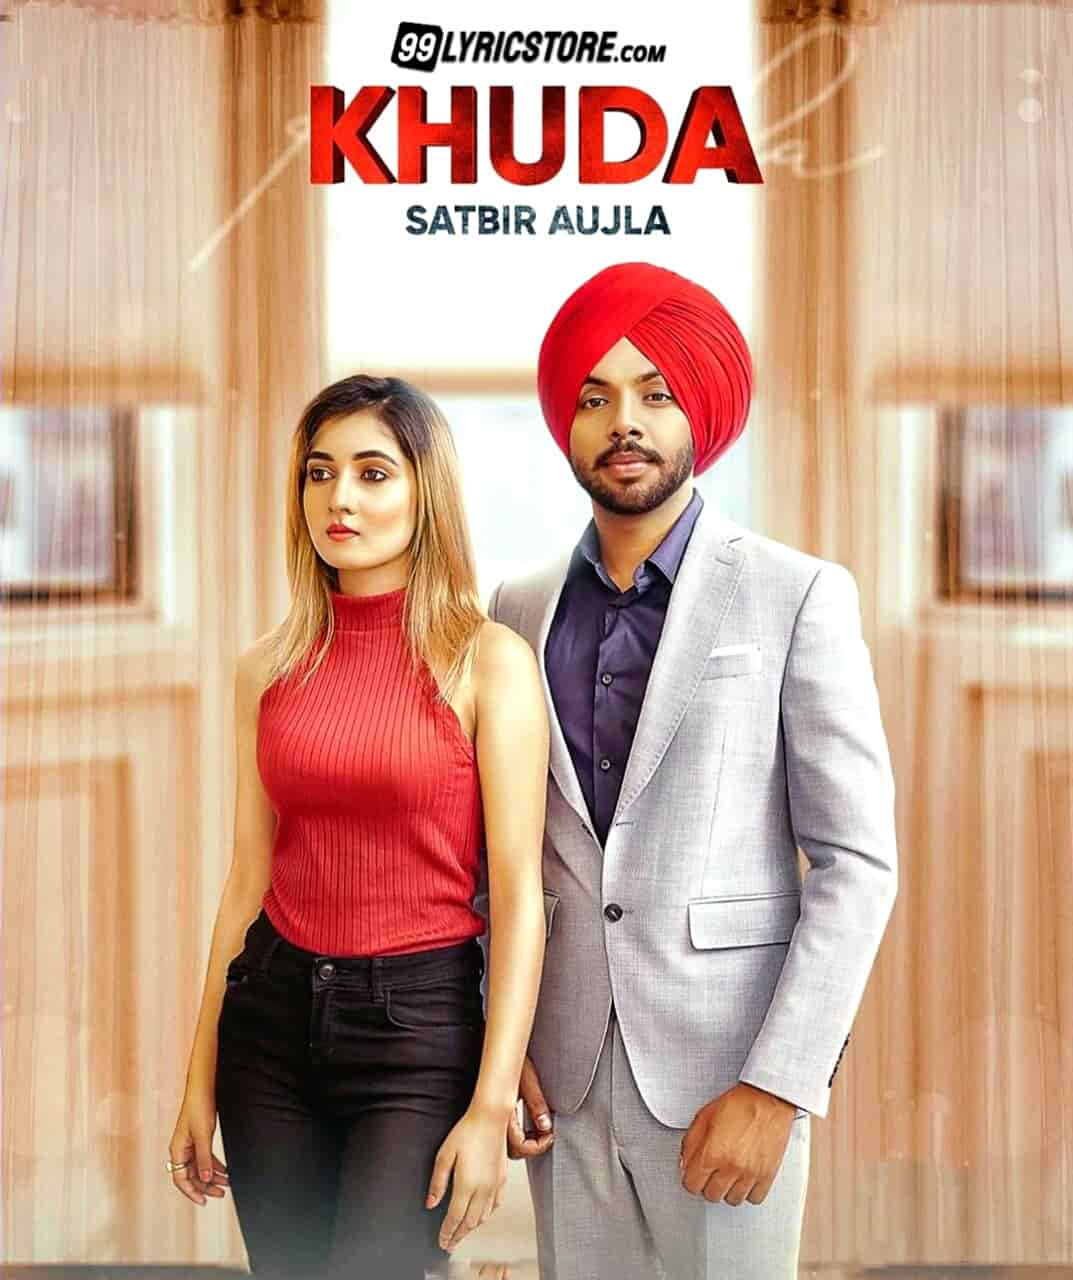 Khuda punjabi song lyrics sung by SATBIR AUJLA from album SARDARI